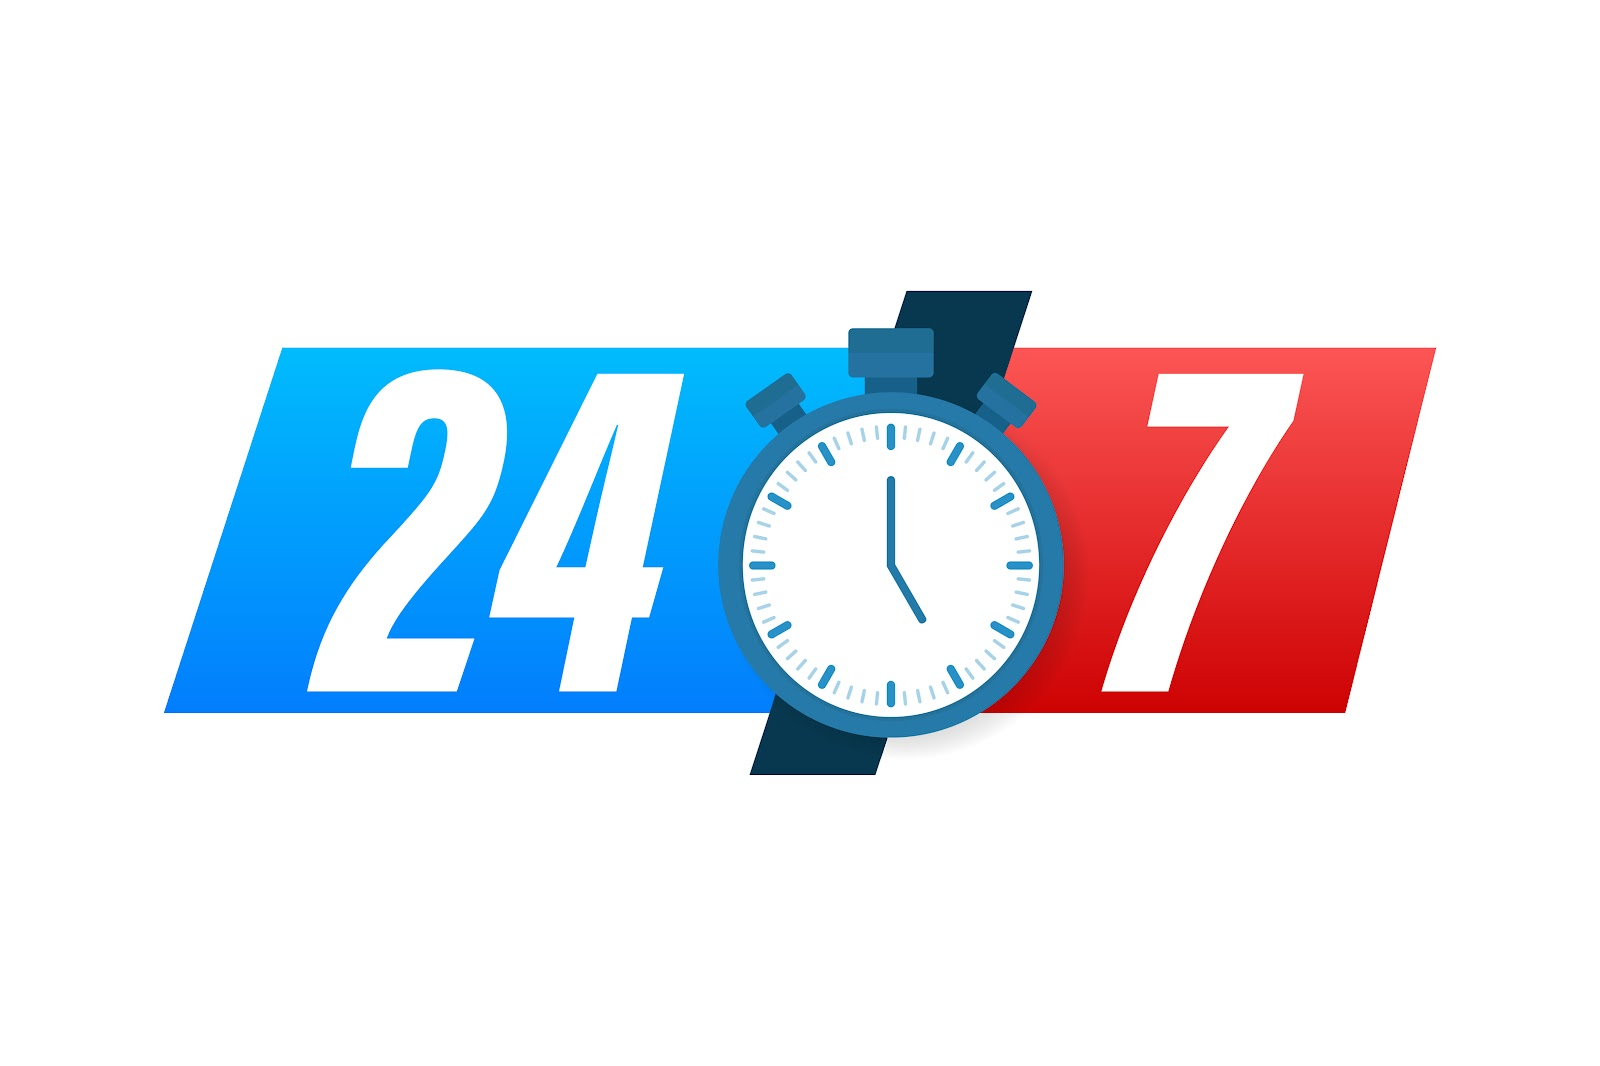 online 24 by 7 illustration with watch